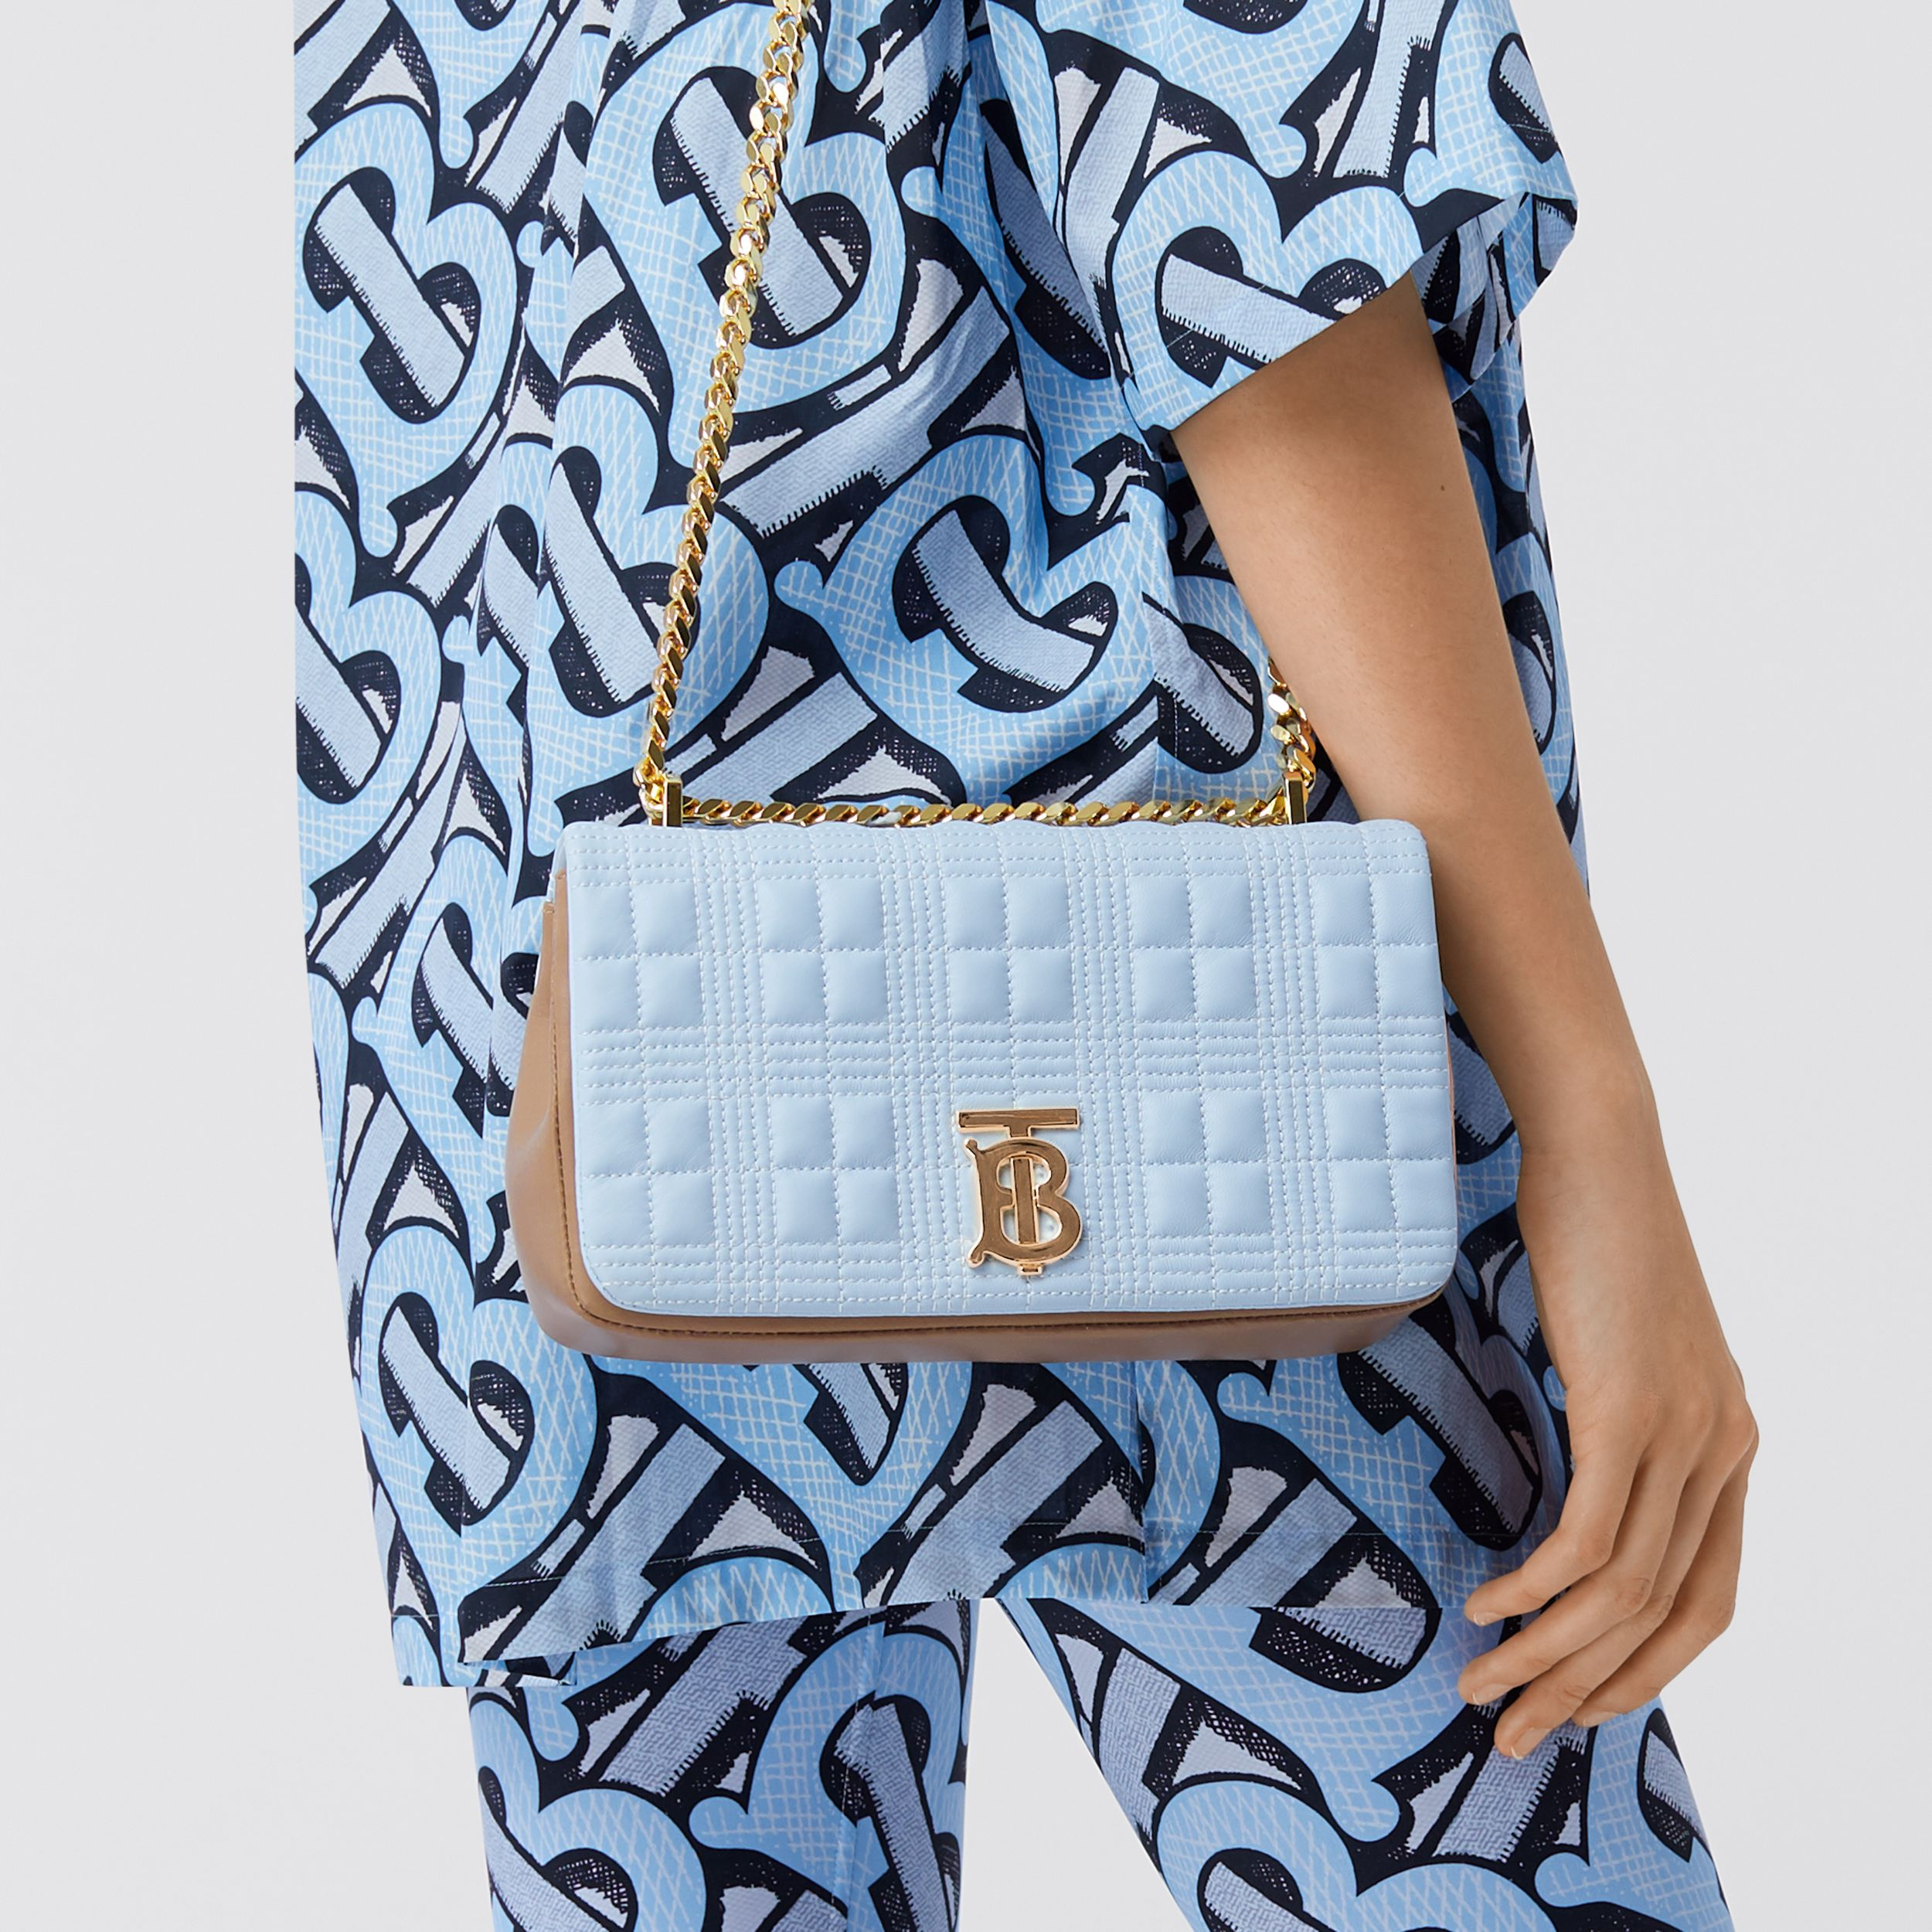 Small Quilted Tri-tone Lambskin Lola Bag in Pale Blue/camel/black - Women | Burberry - 3